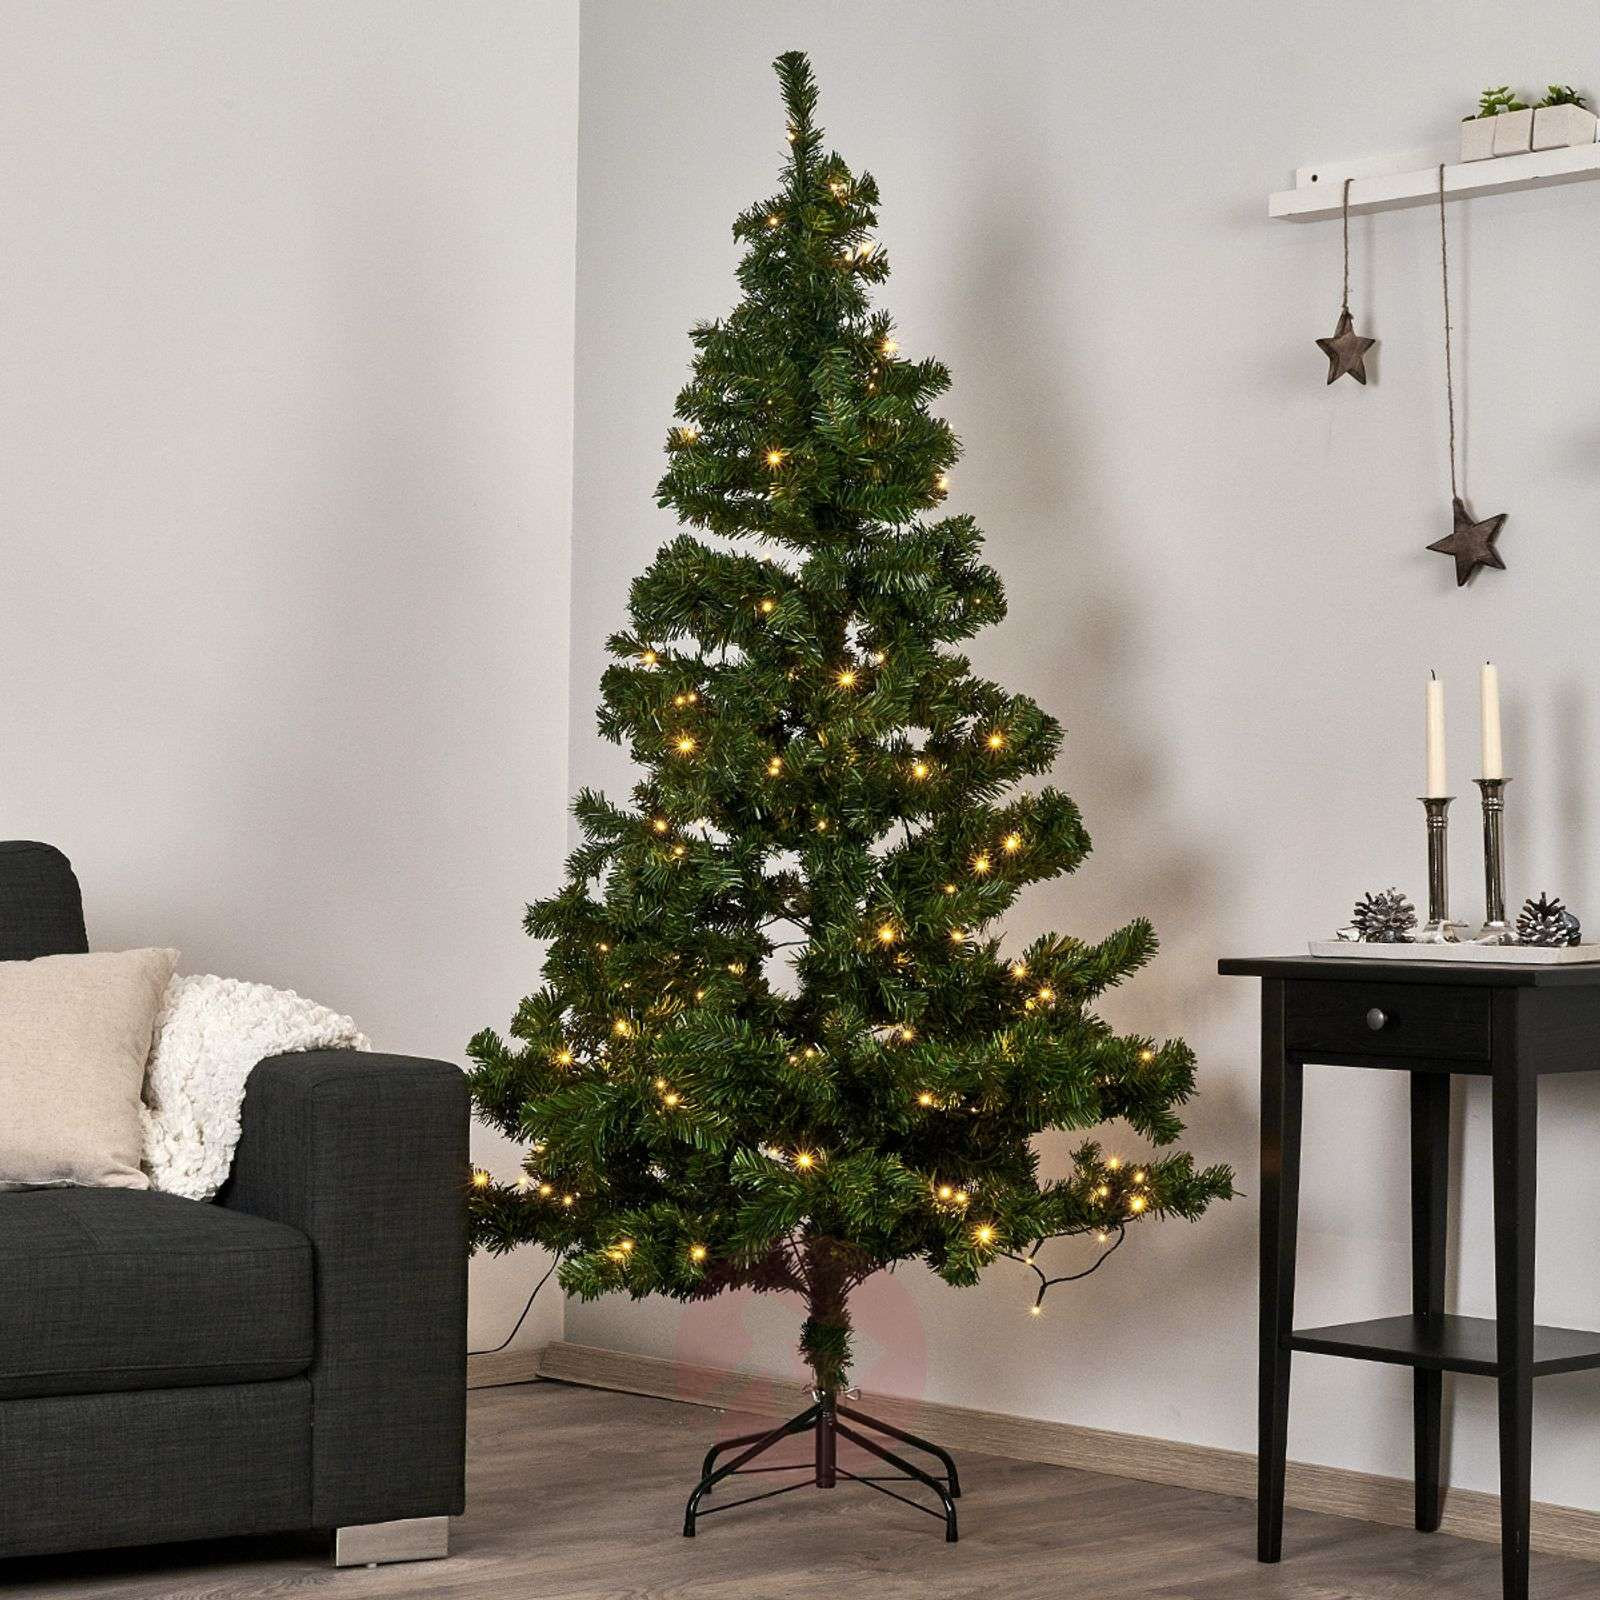 LED kerstboom 180 cm, 180 LED-1522054-01